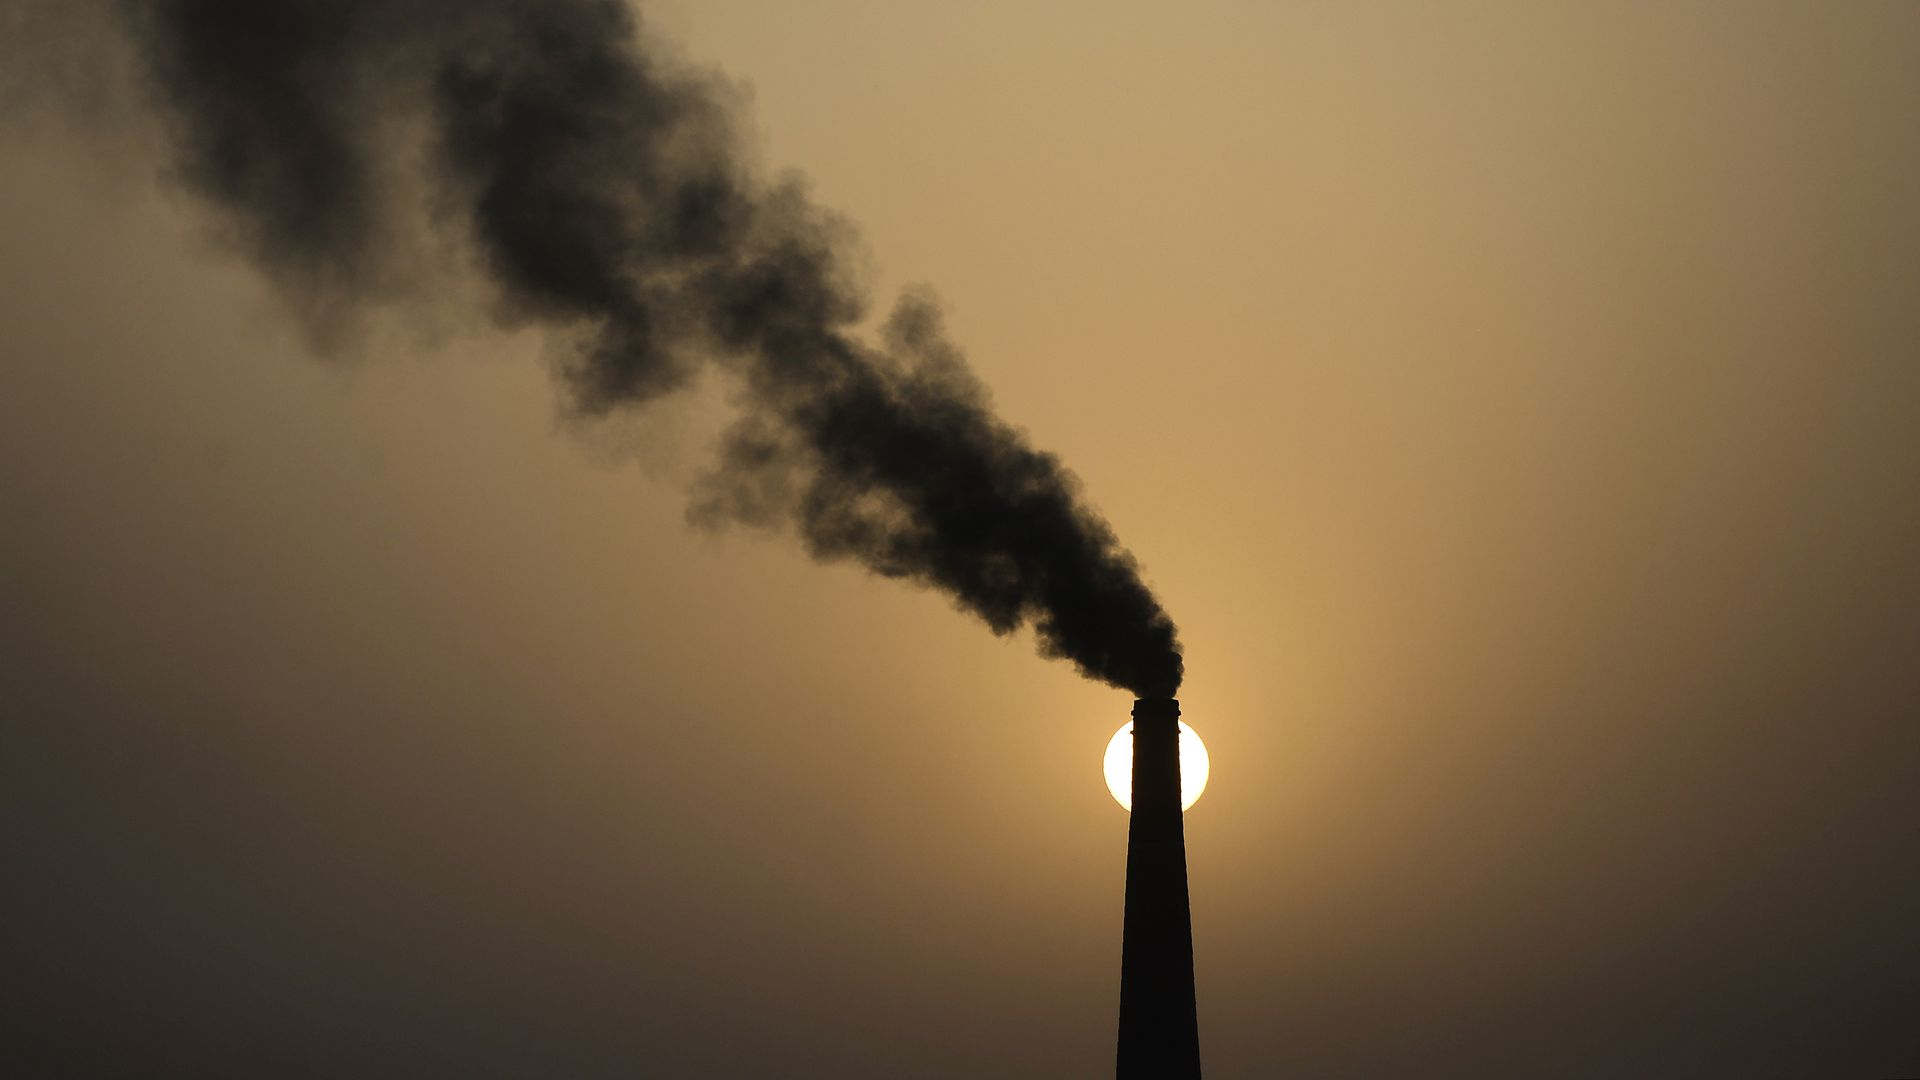 A chimney of a brick factory emits smoke during sunset in Jalandhar on May 31, 2018.